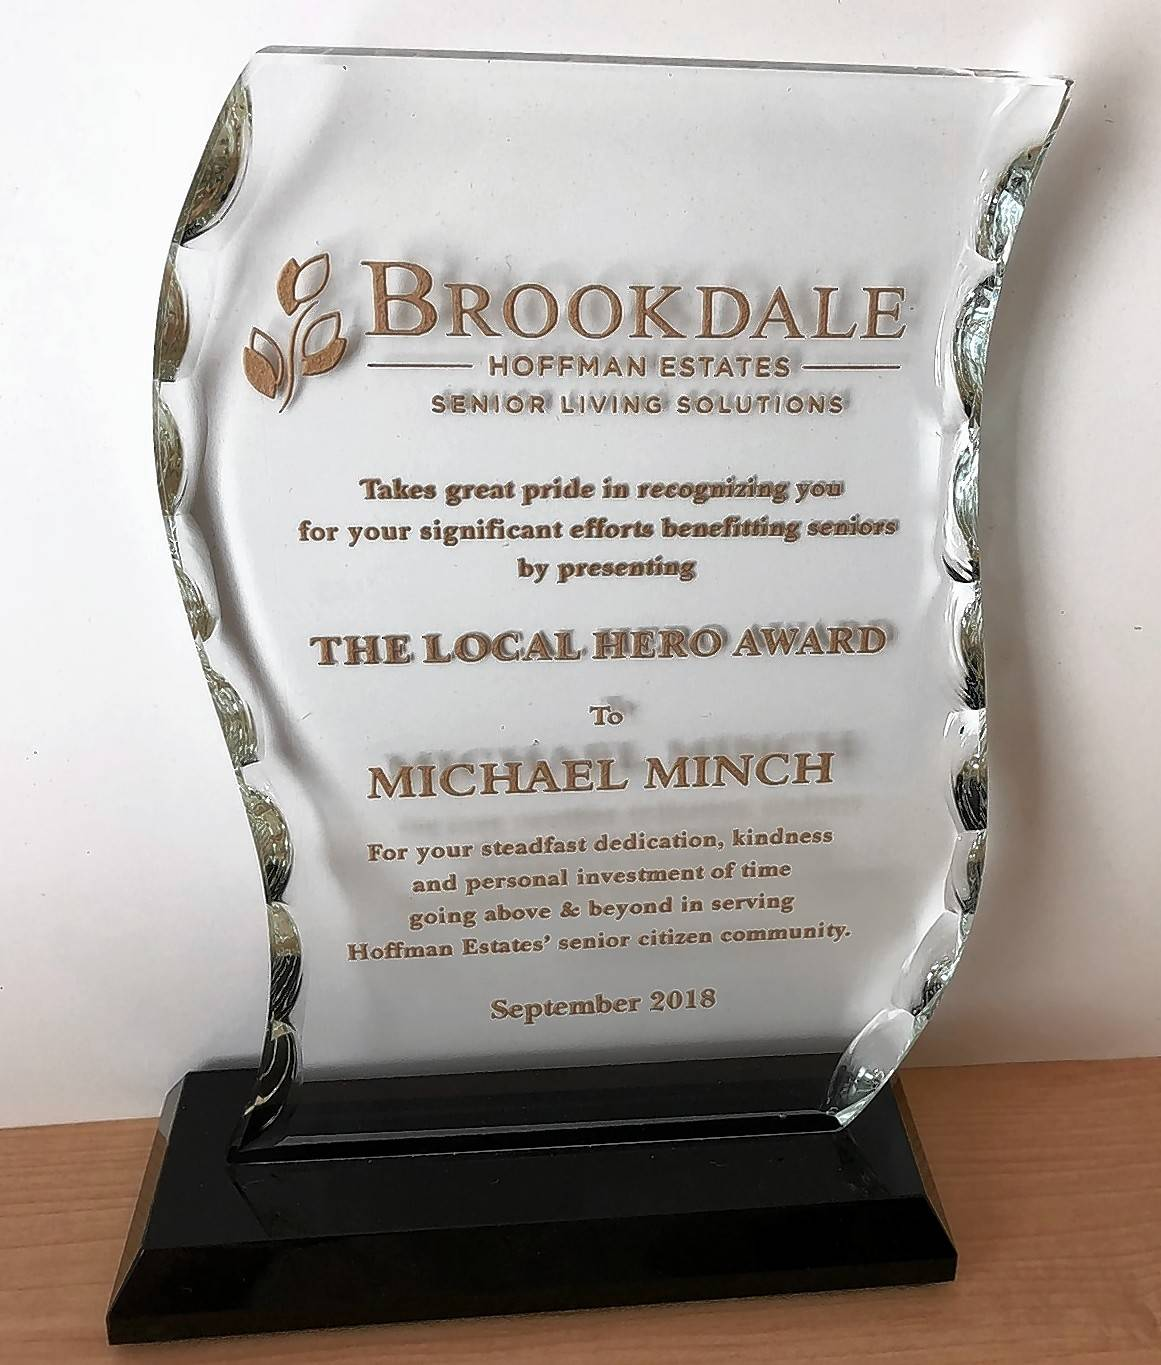 Schaumburg resident Michael Minch's Local Hero Award that he received from Brookdale Hoffman Estates Senior Living Solutions Tuesday afternoon at a ceremony intended to honor the spirit of the heroes who helped others on Sept. 11, 2001.